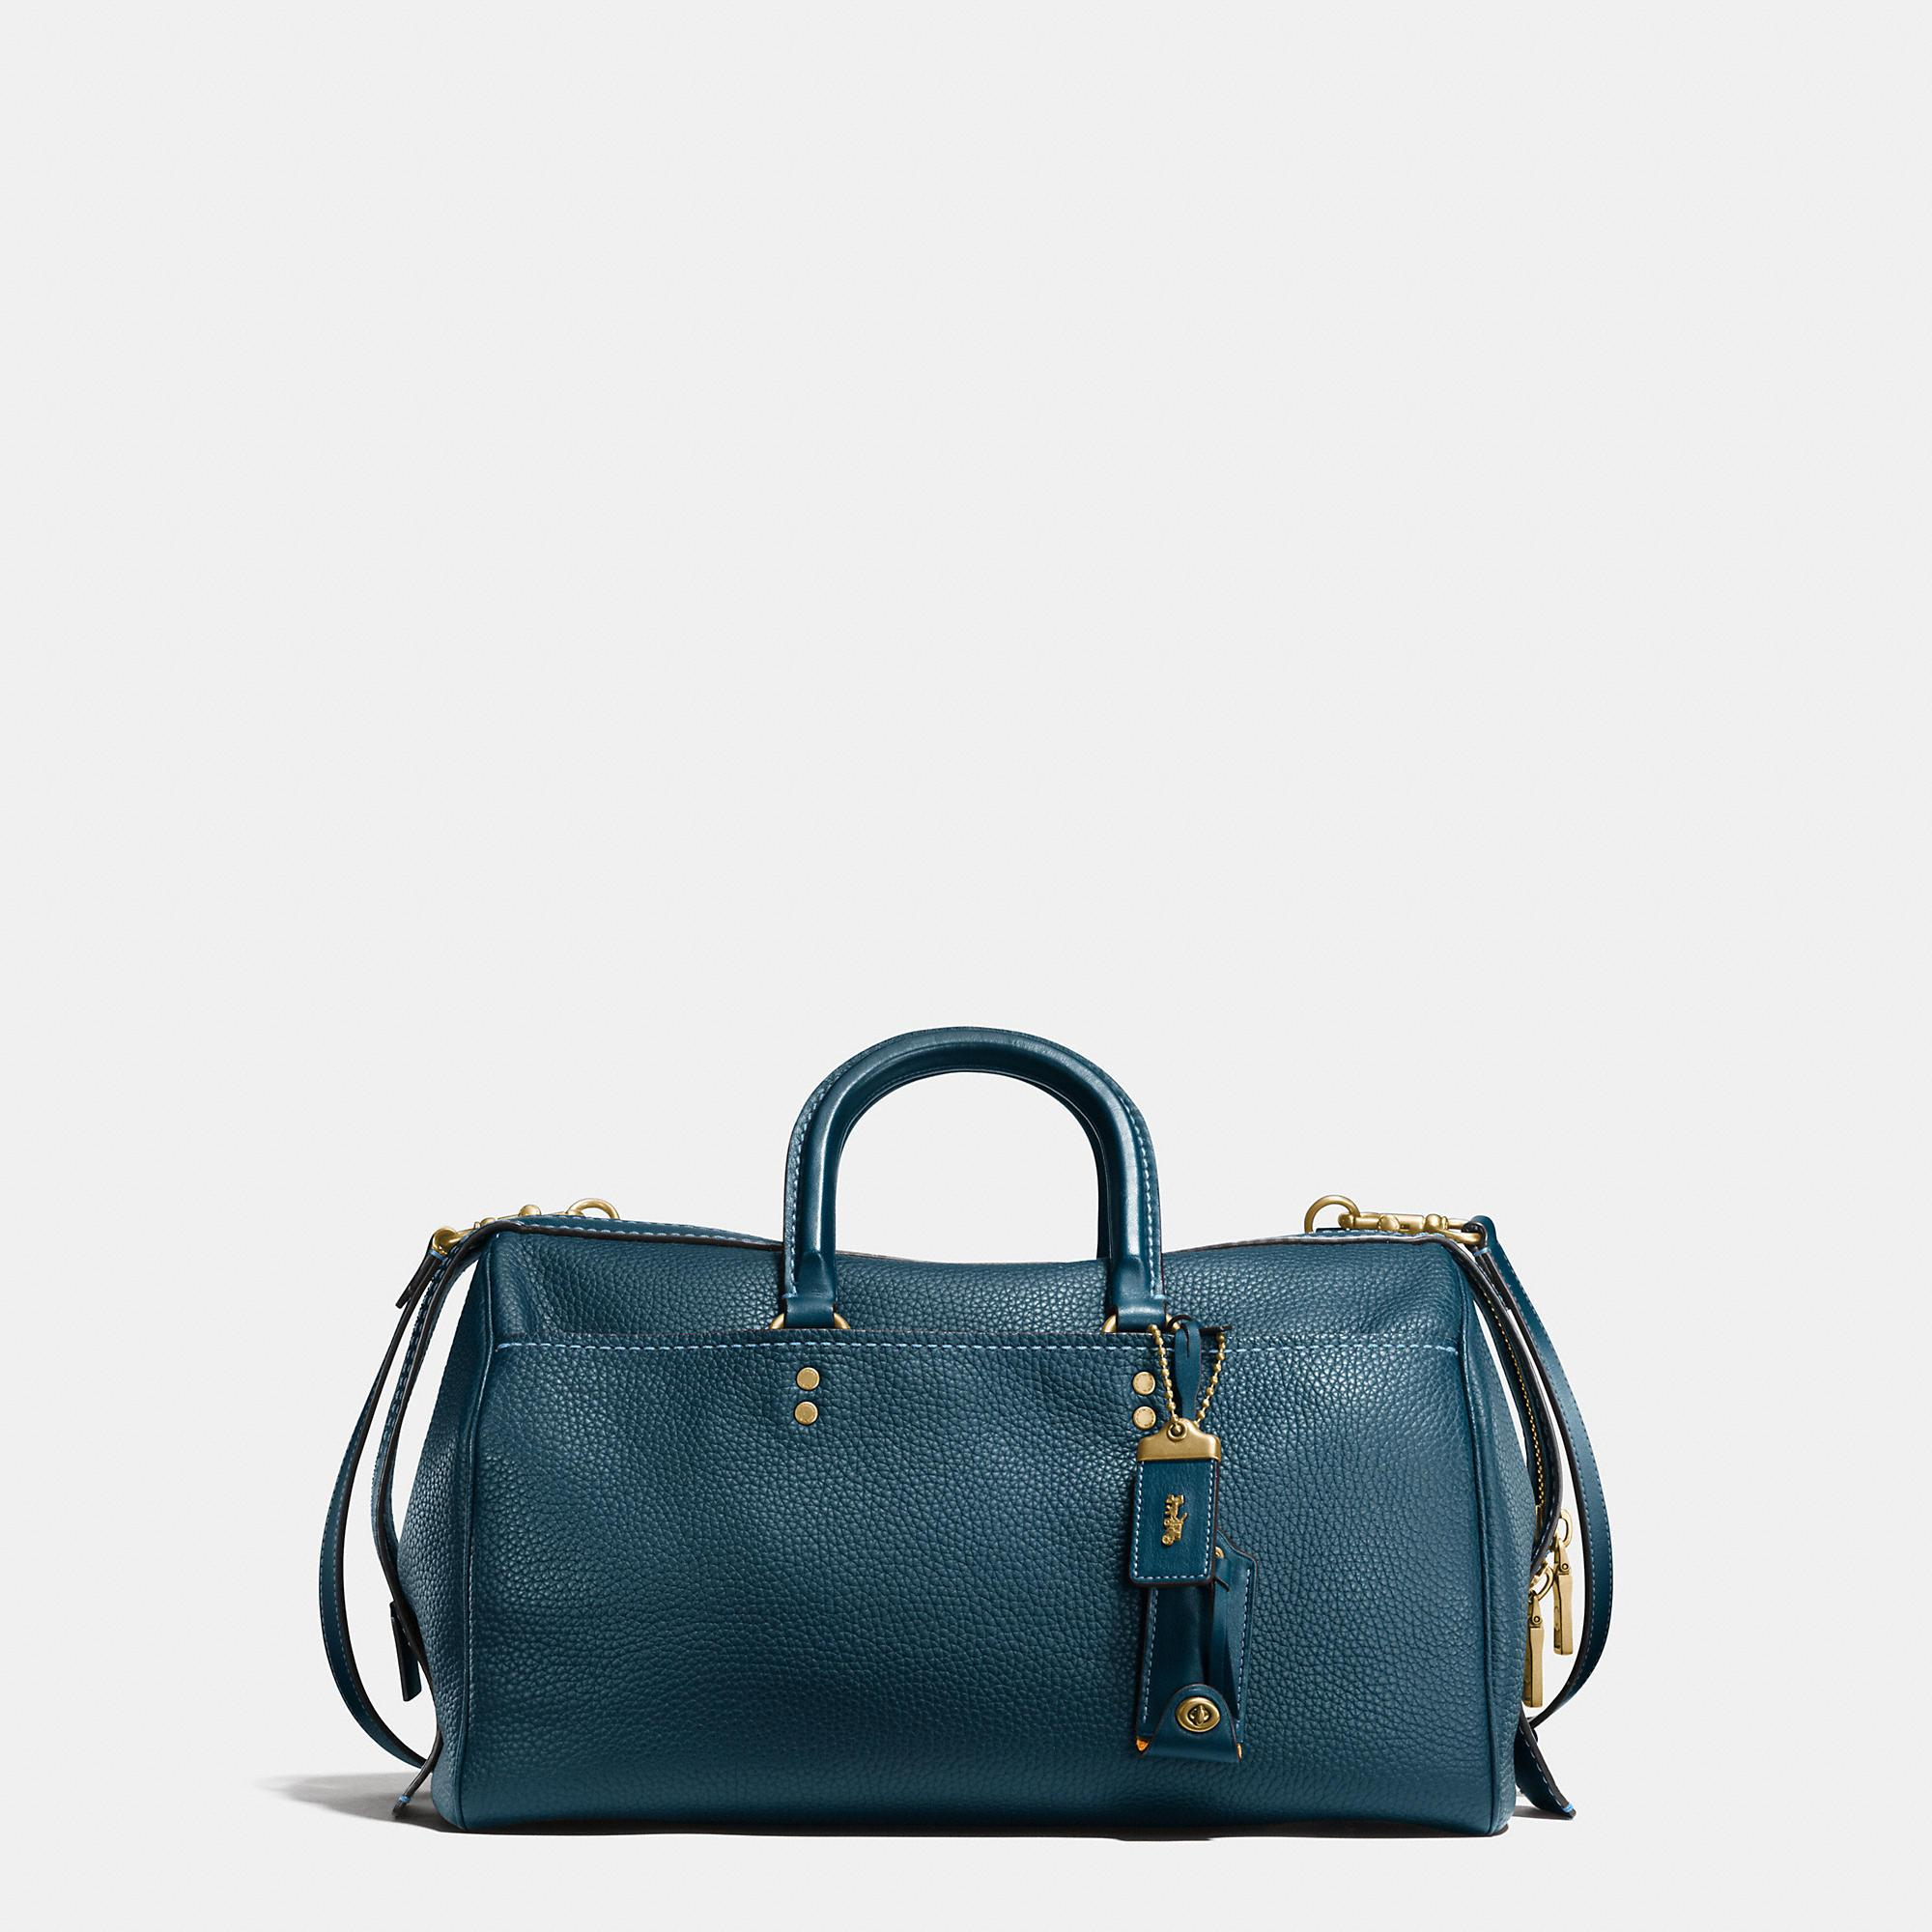 Lyst Coach Rogue Satchel 36 In Glovetanned Pebble